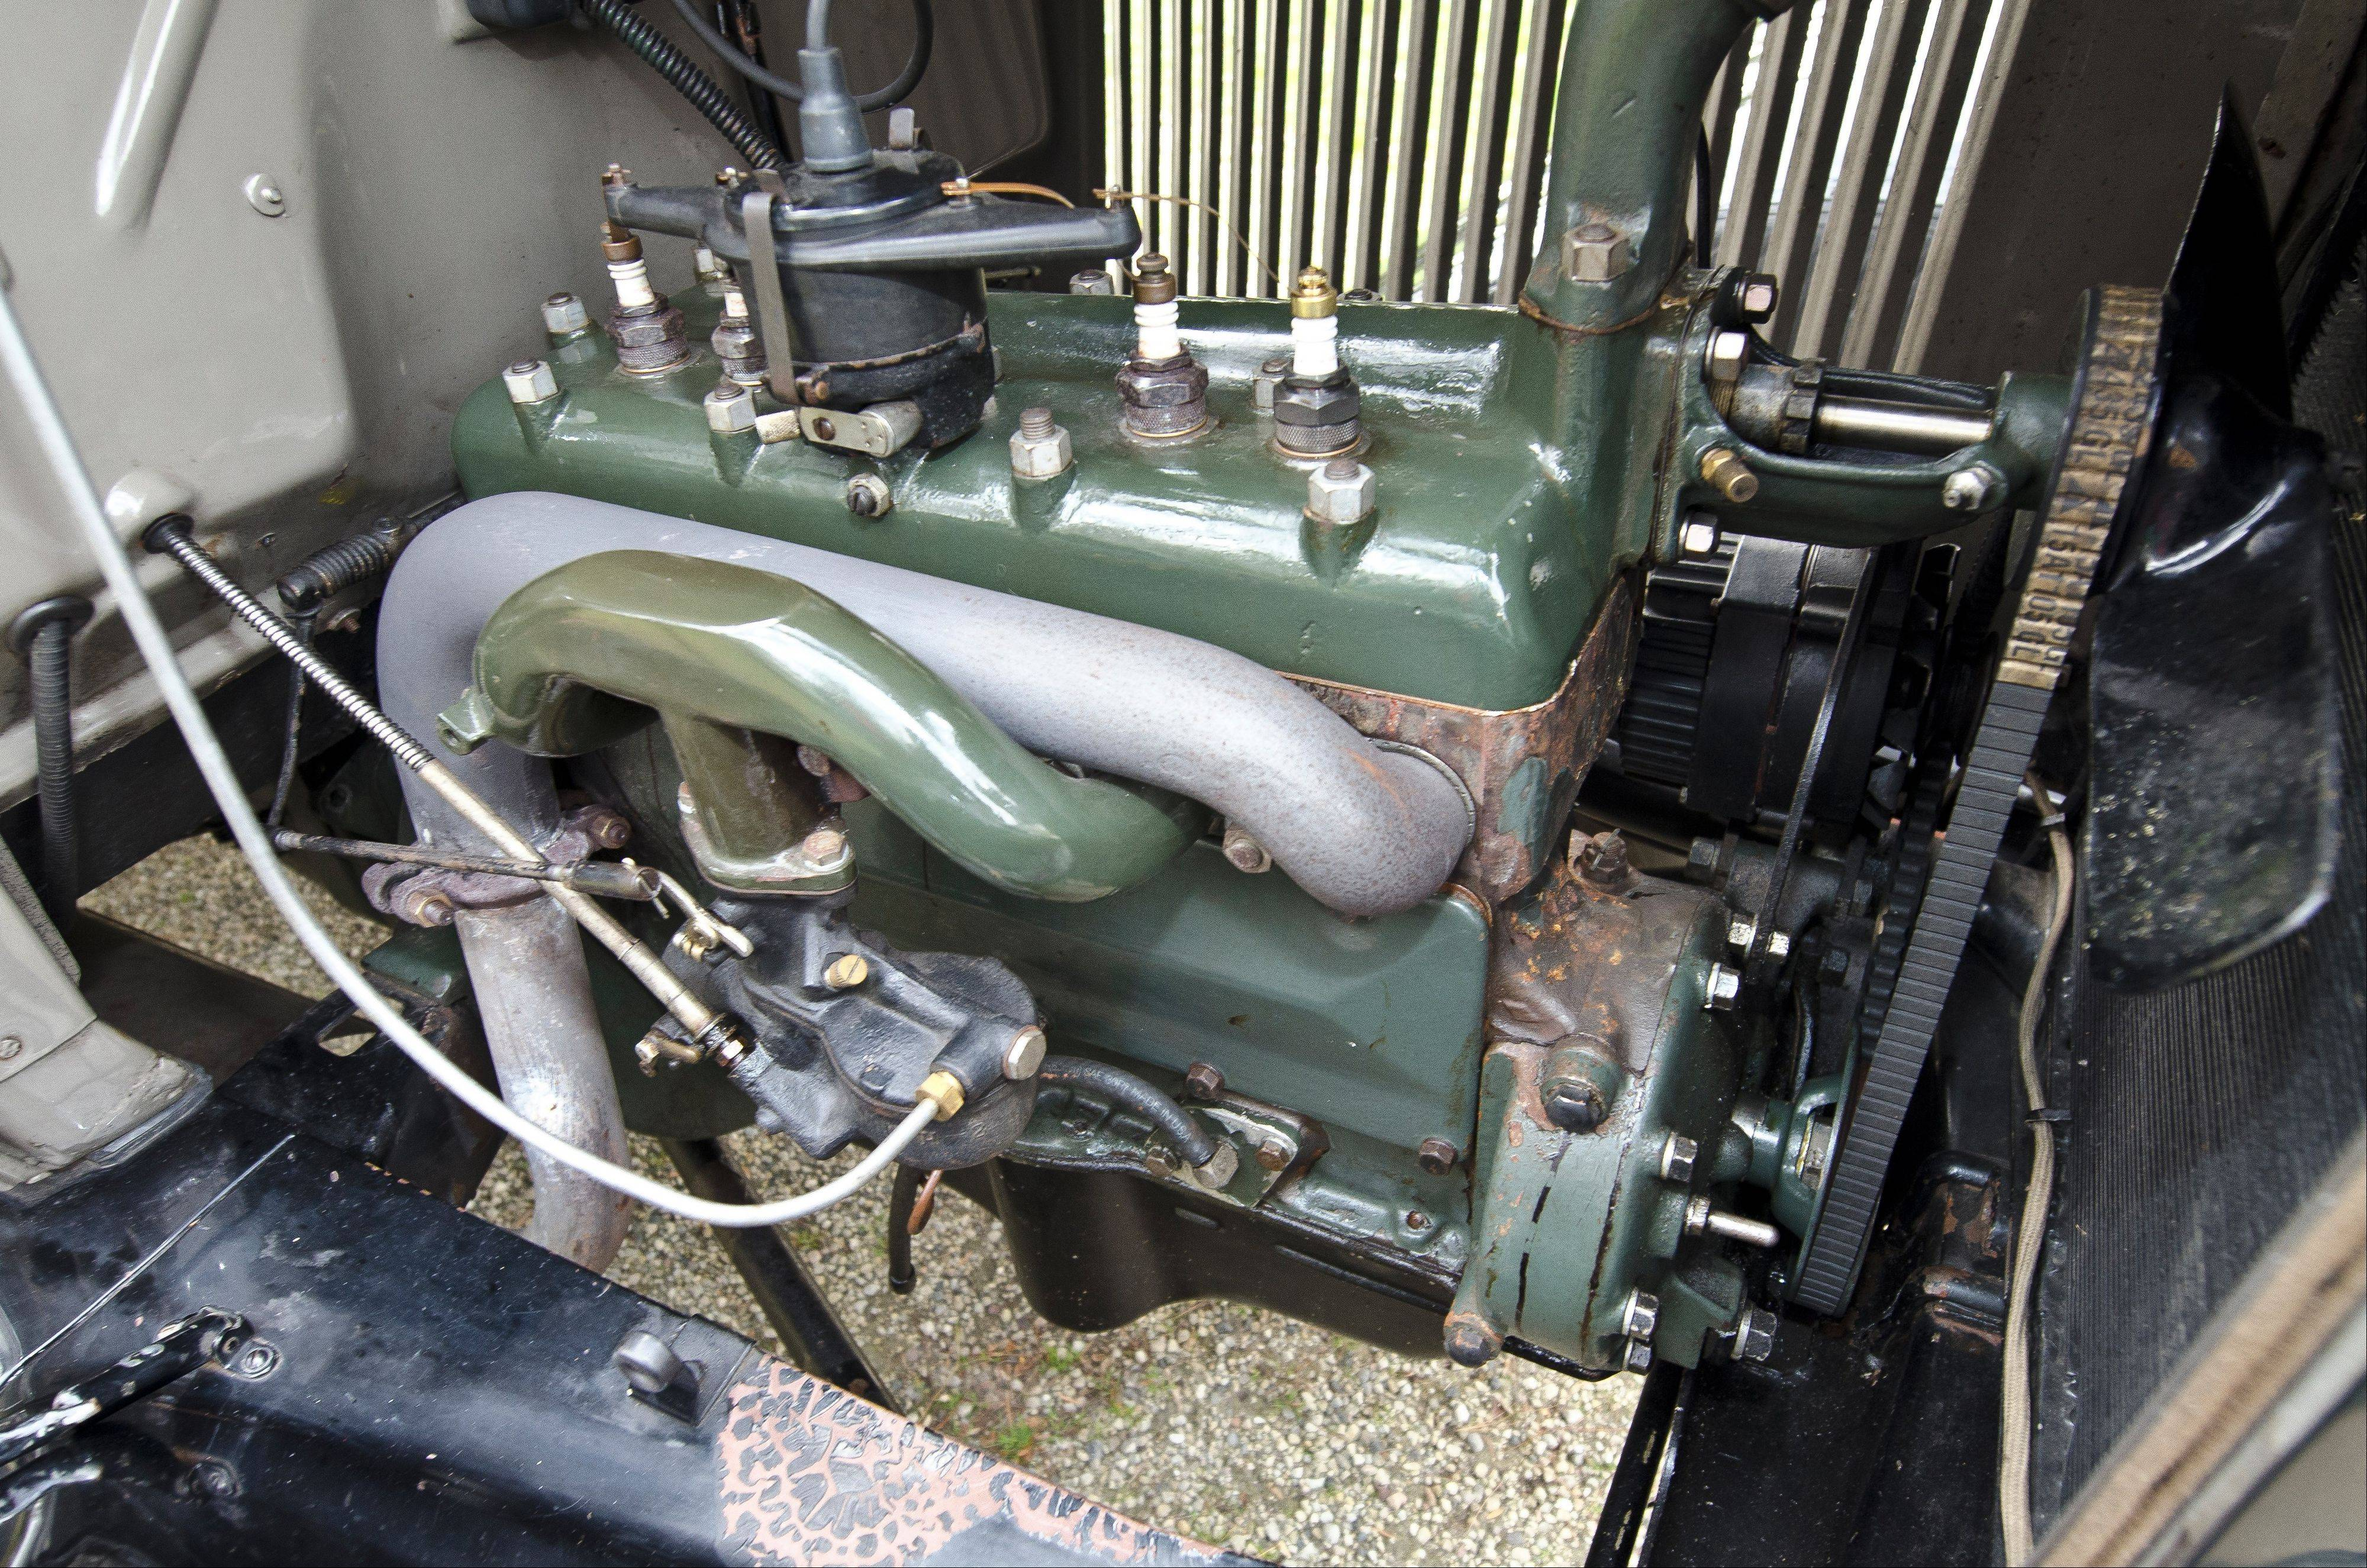 Engine of the 1930 Ford Model A sedan.